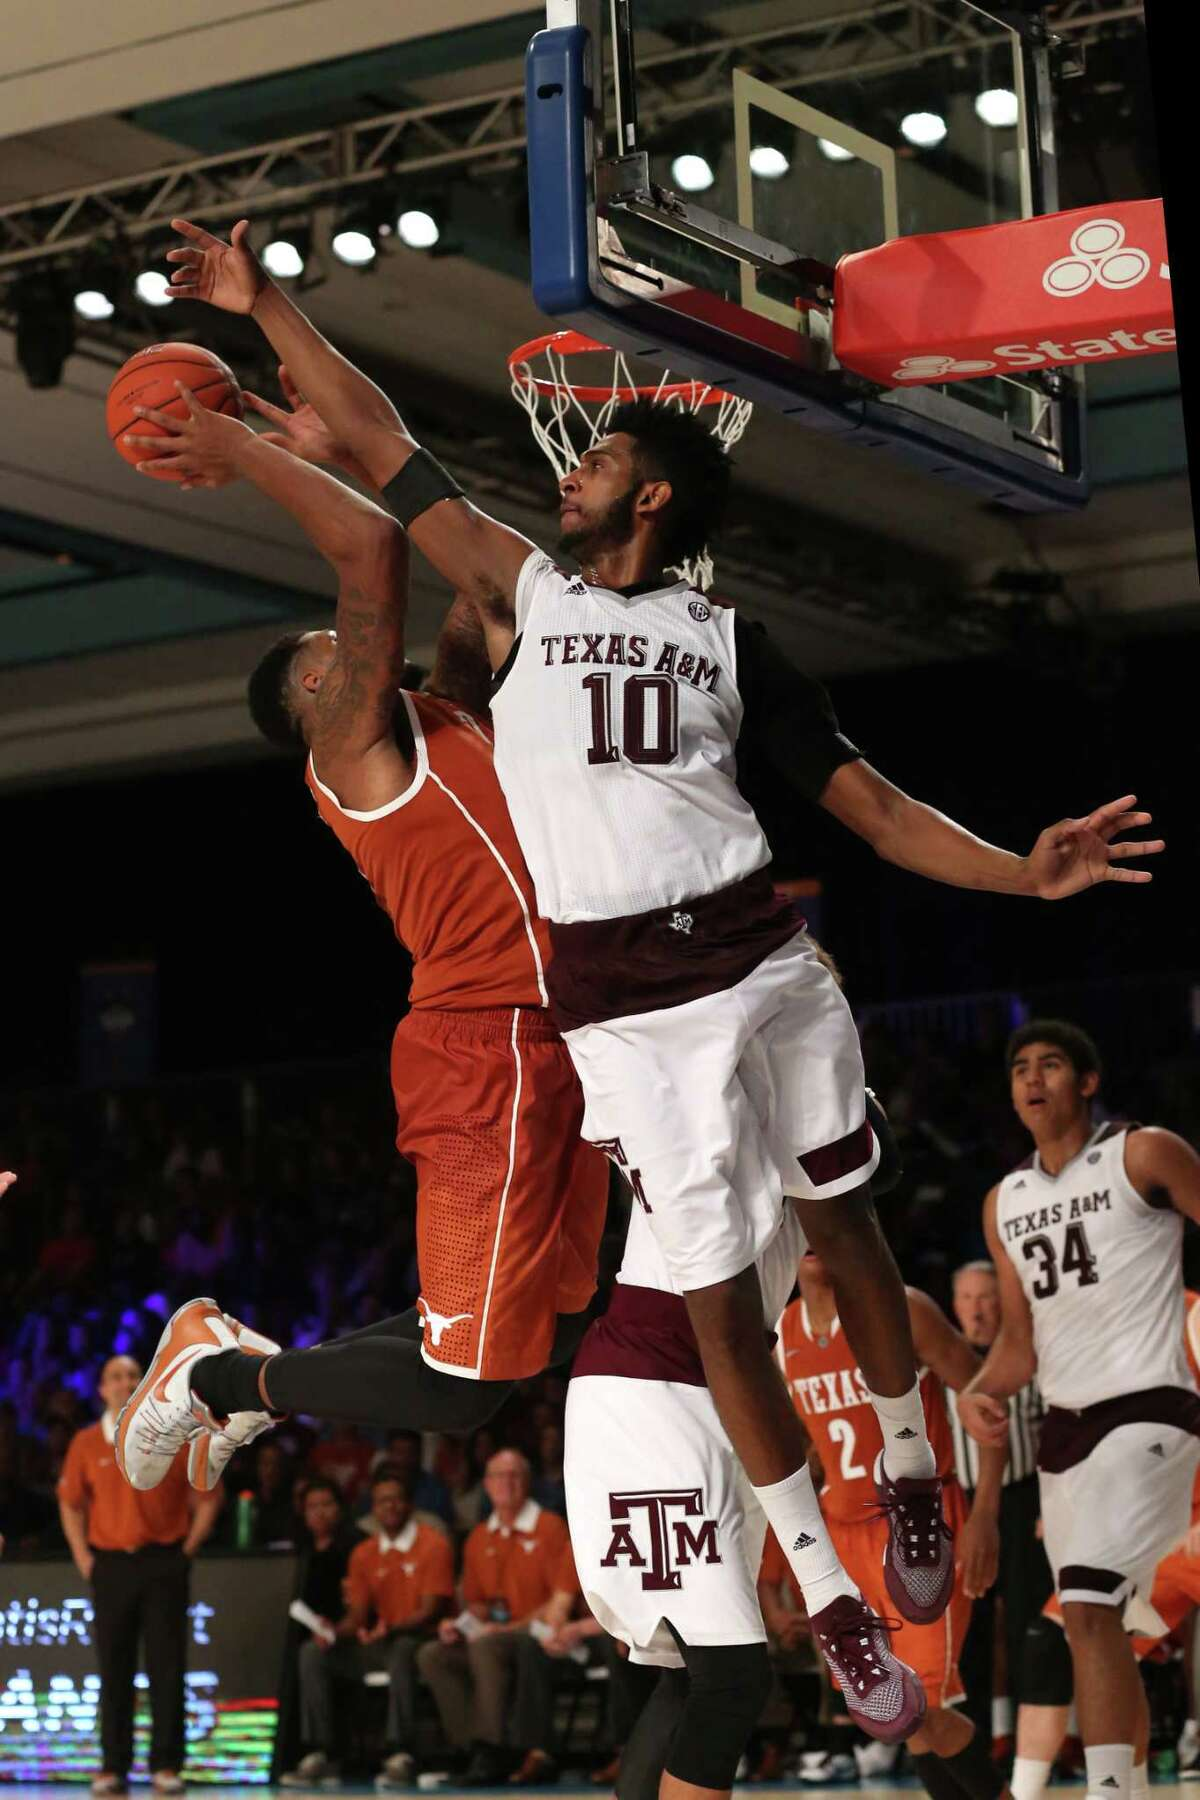 Tonny Torcha-Morelos, #10 of Texas A&M, defends a shot from Cameron Ridley, #55 of the University of Texas. The University of Texas played Texas A&M on November 25th, 2015 in the Battle 4 Atlantis tournament in the Bahamas.